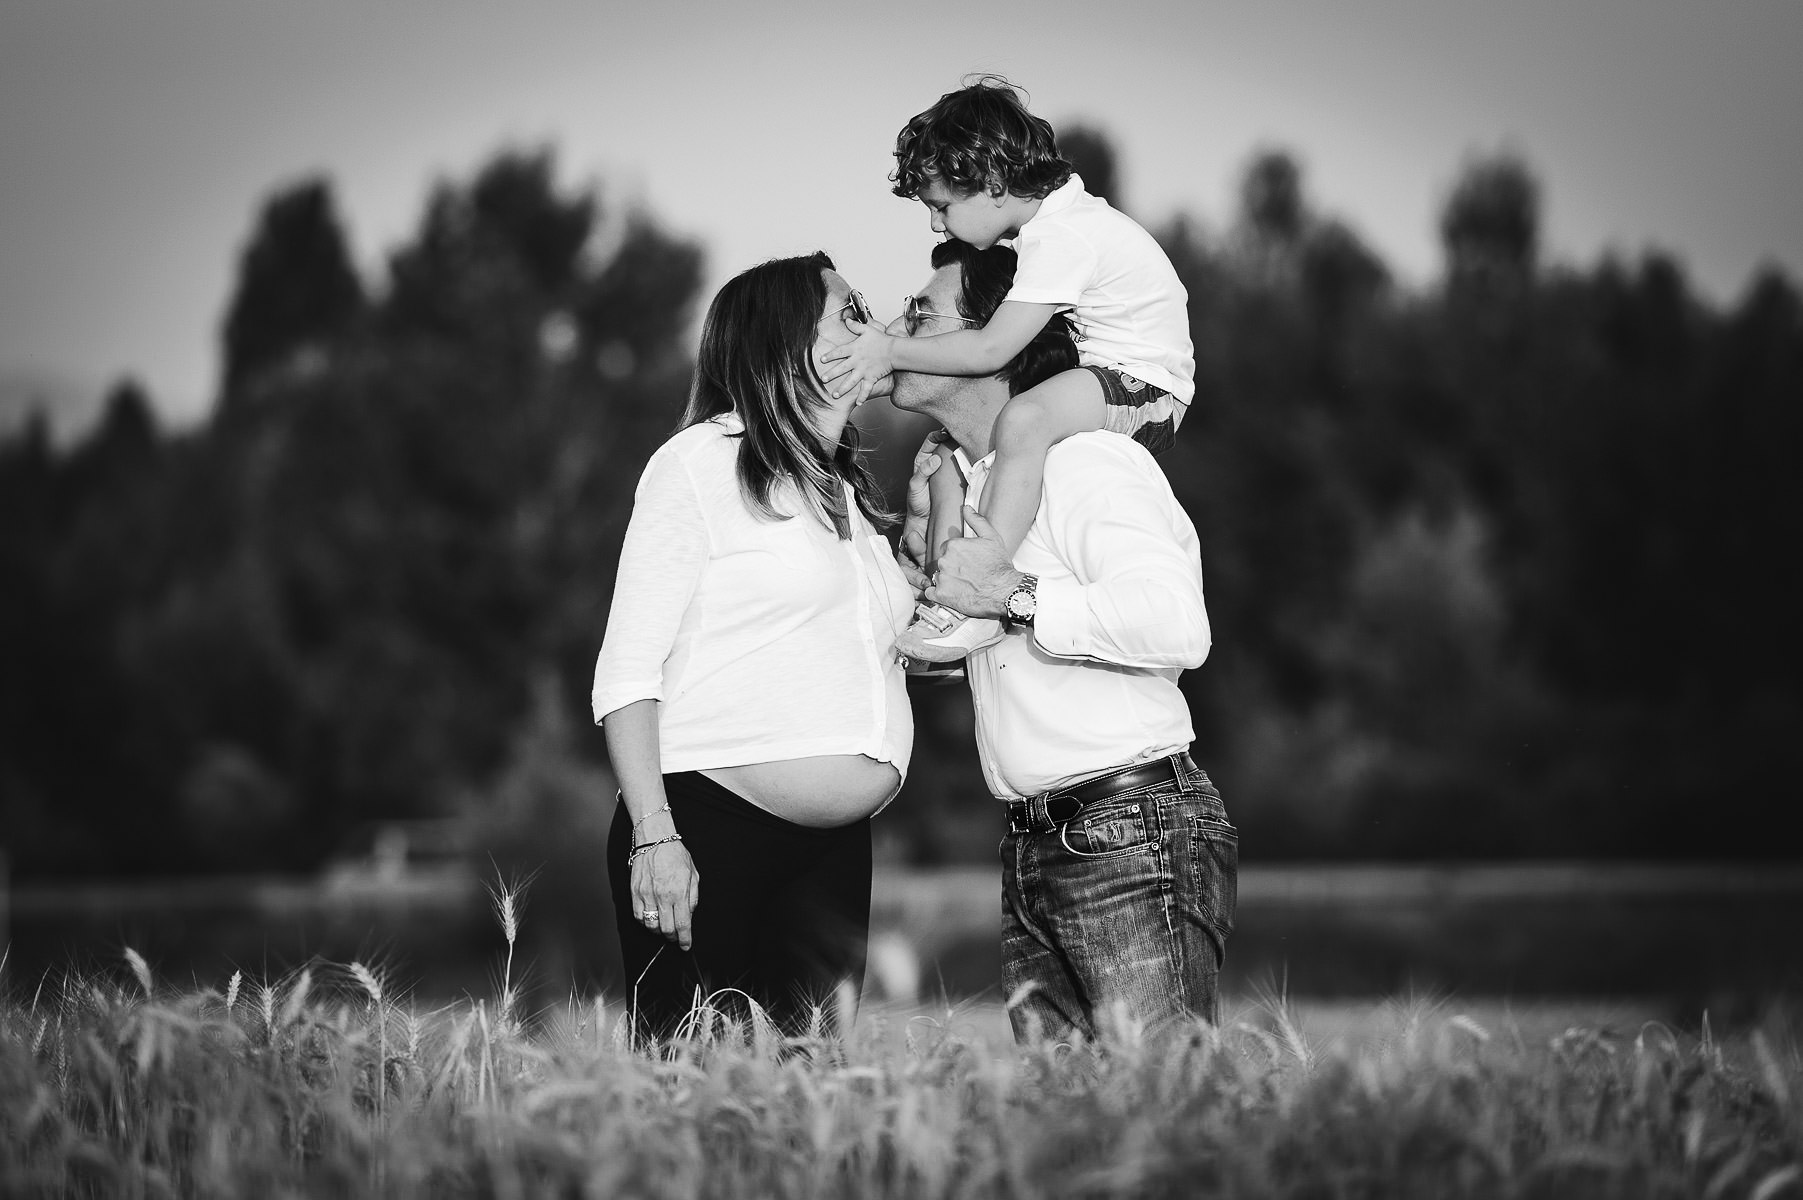 Lovely moment share by mom, dad and kid in this maternity photo service in Tuscany countryside Mugello